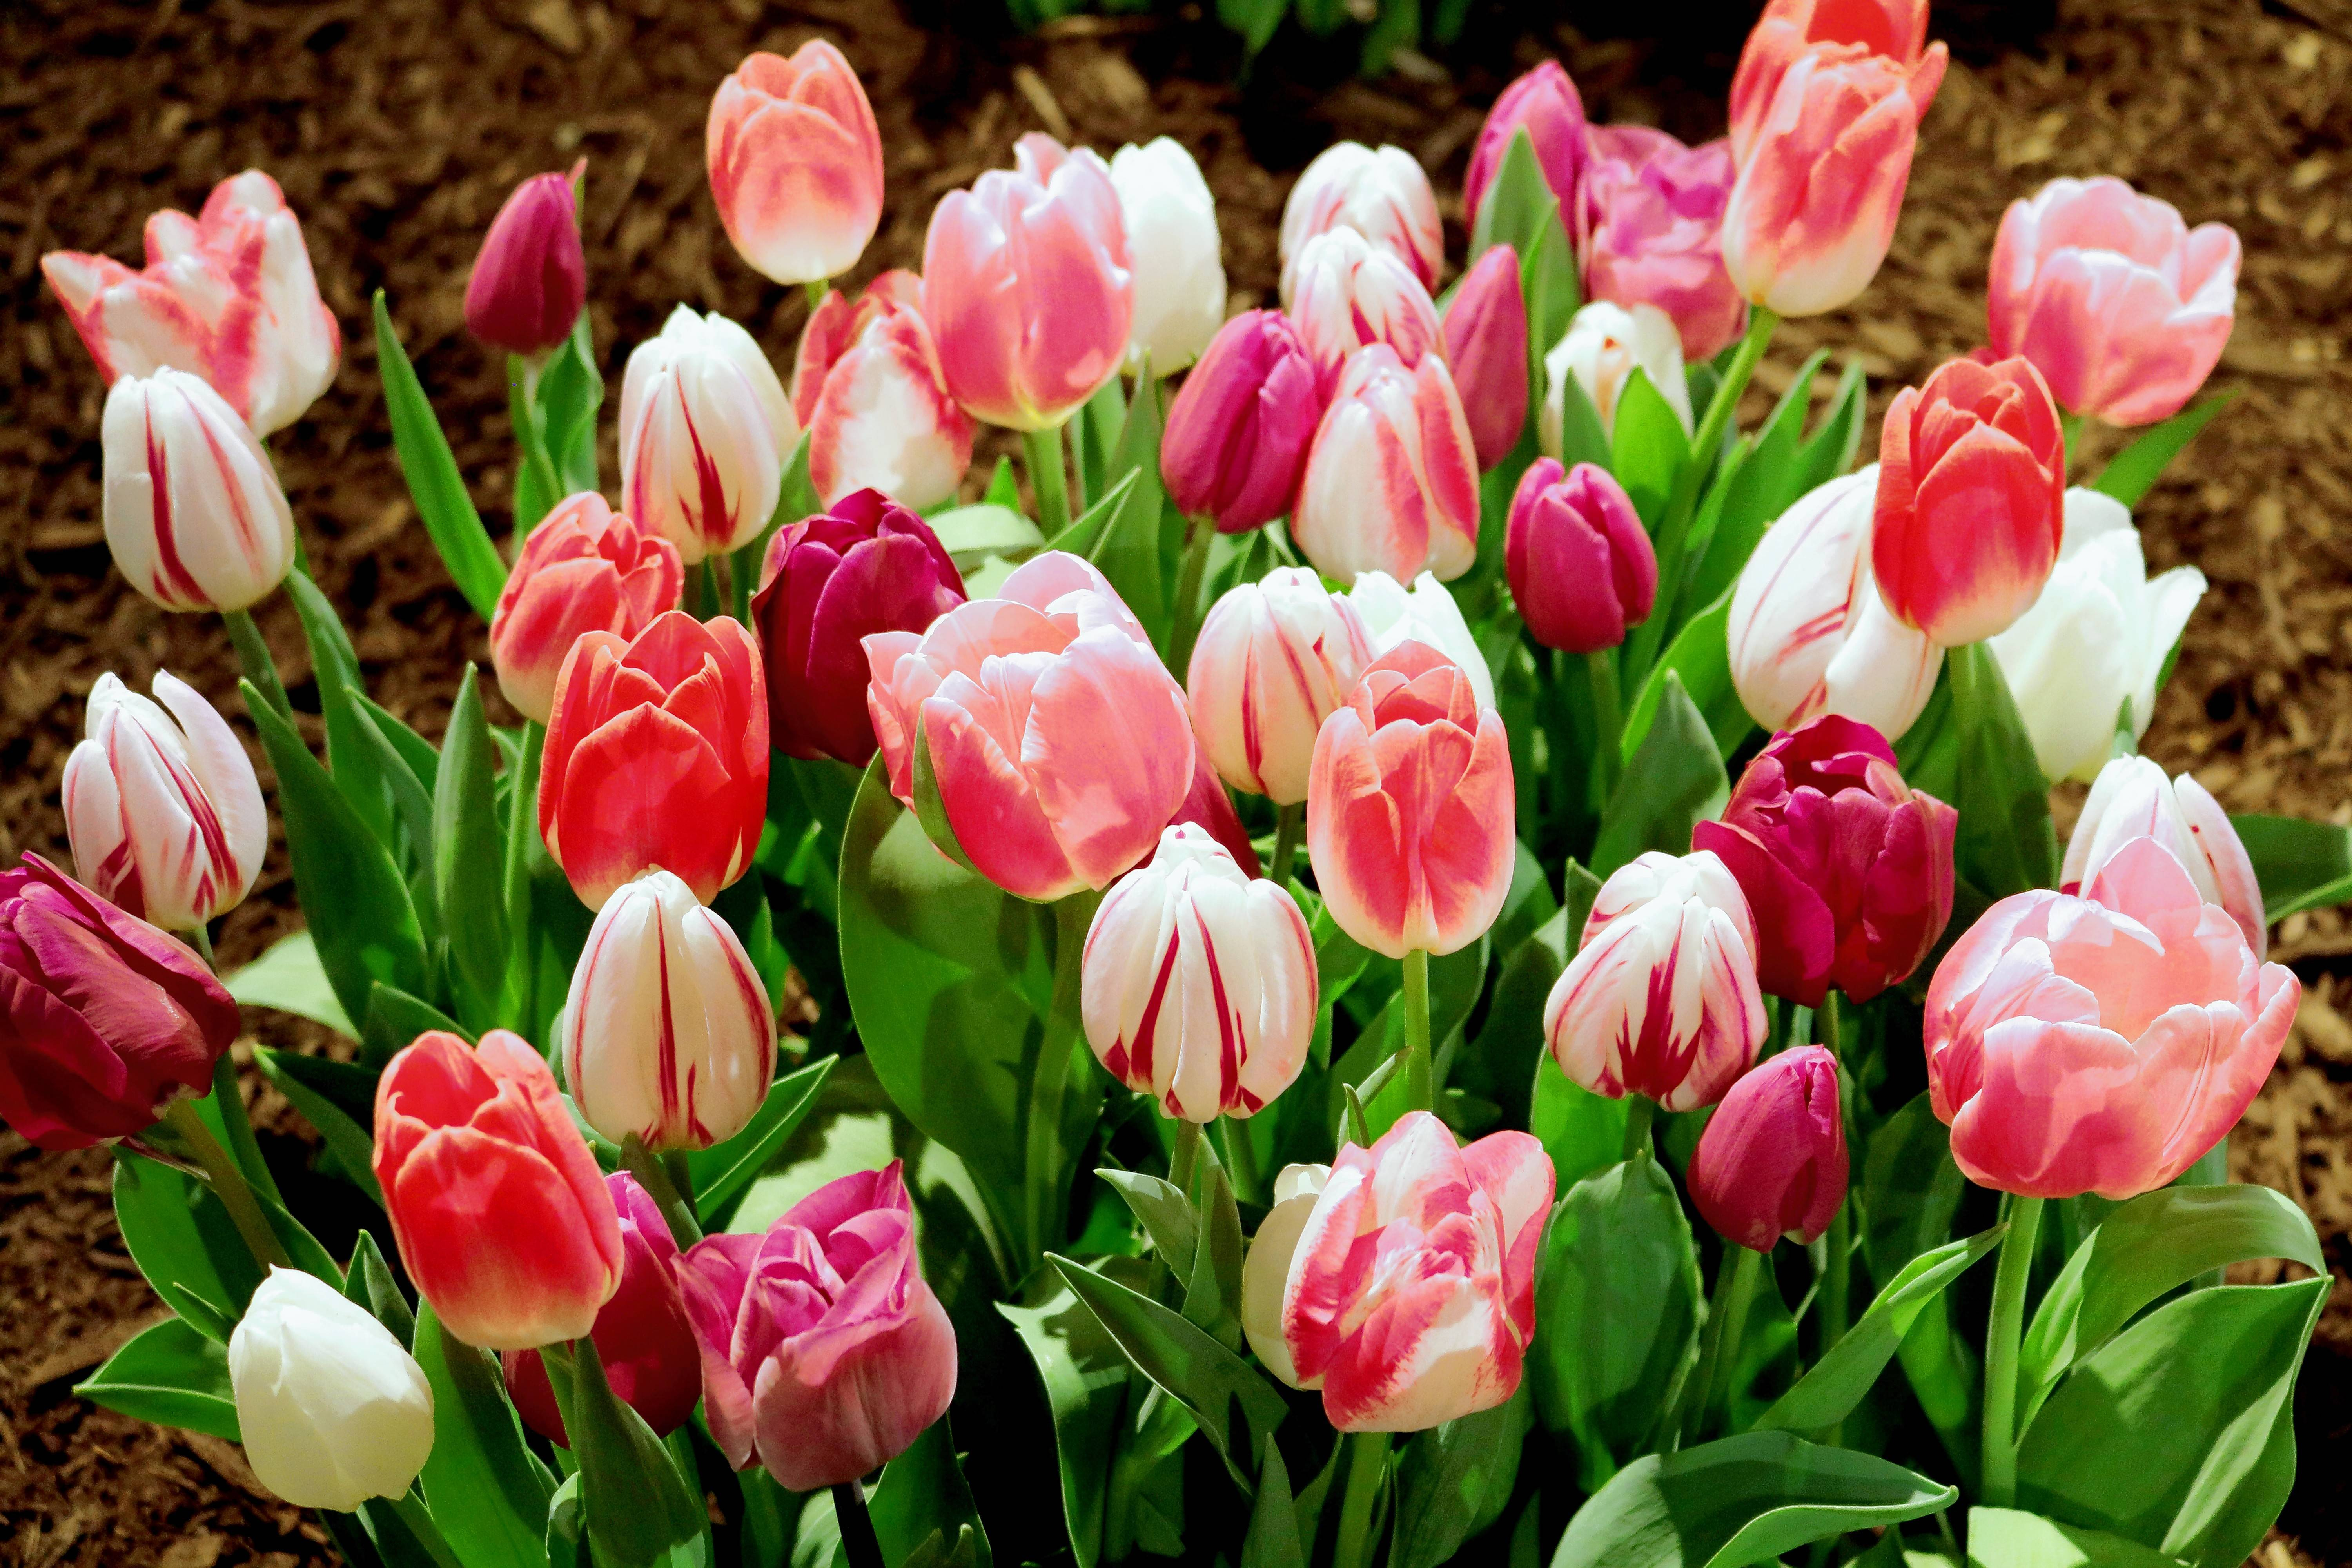 Tulips are available in a wide range of colors.